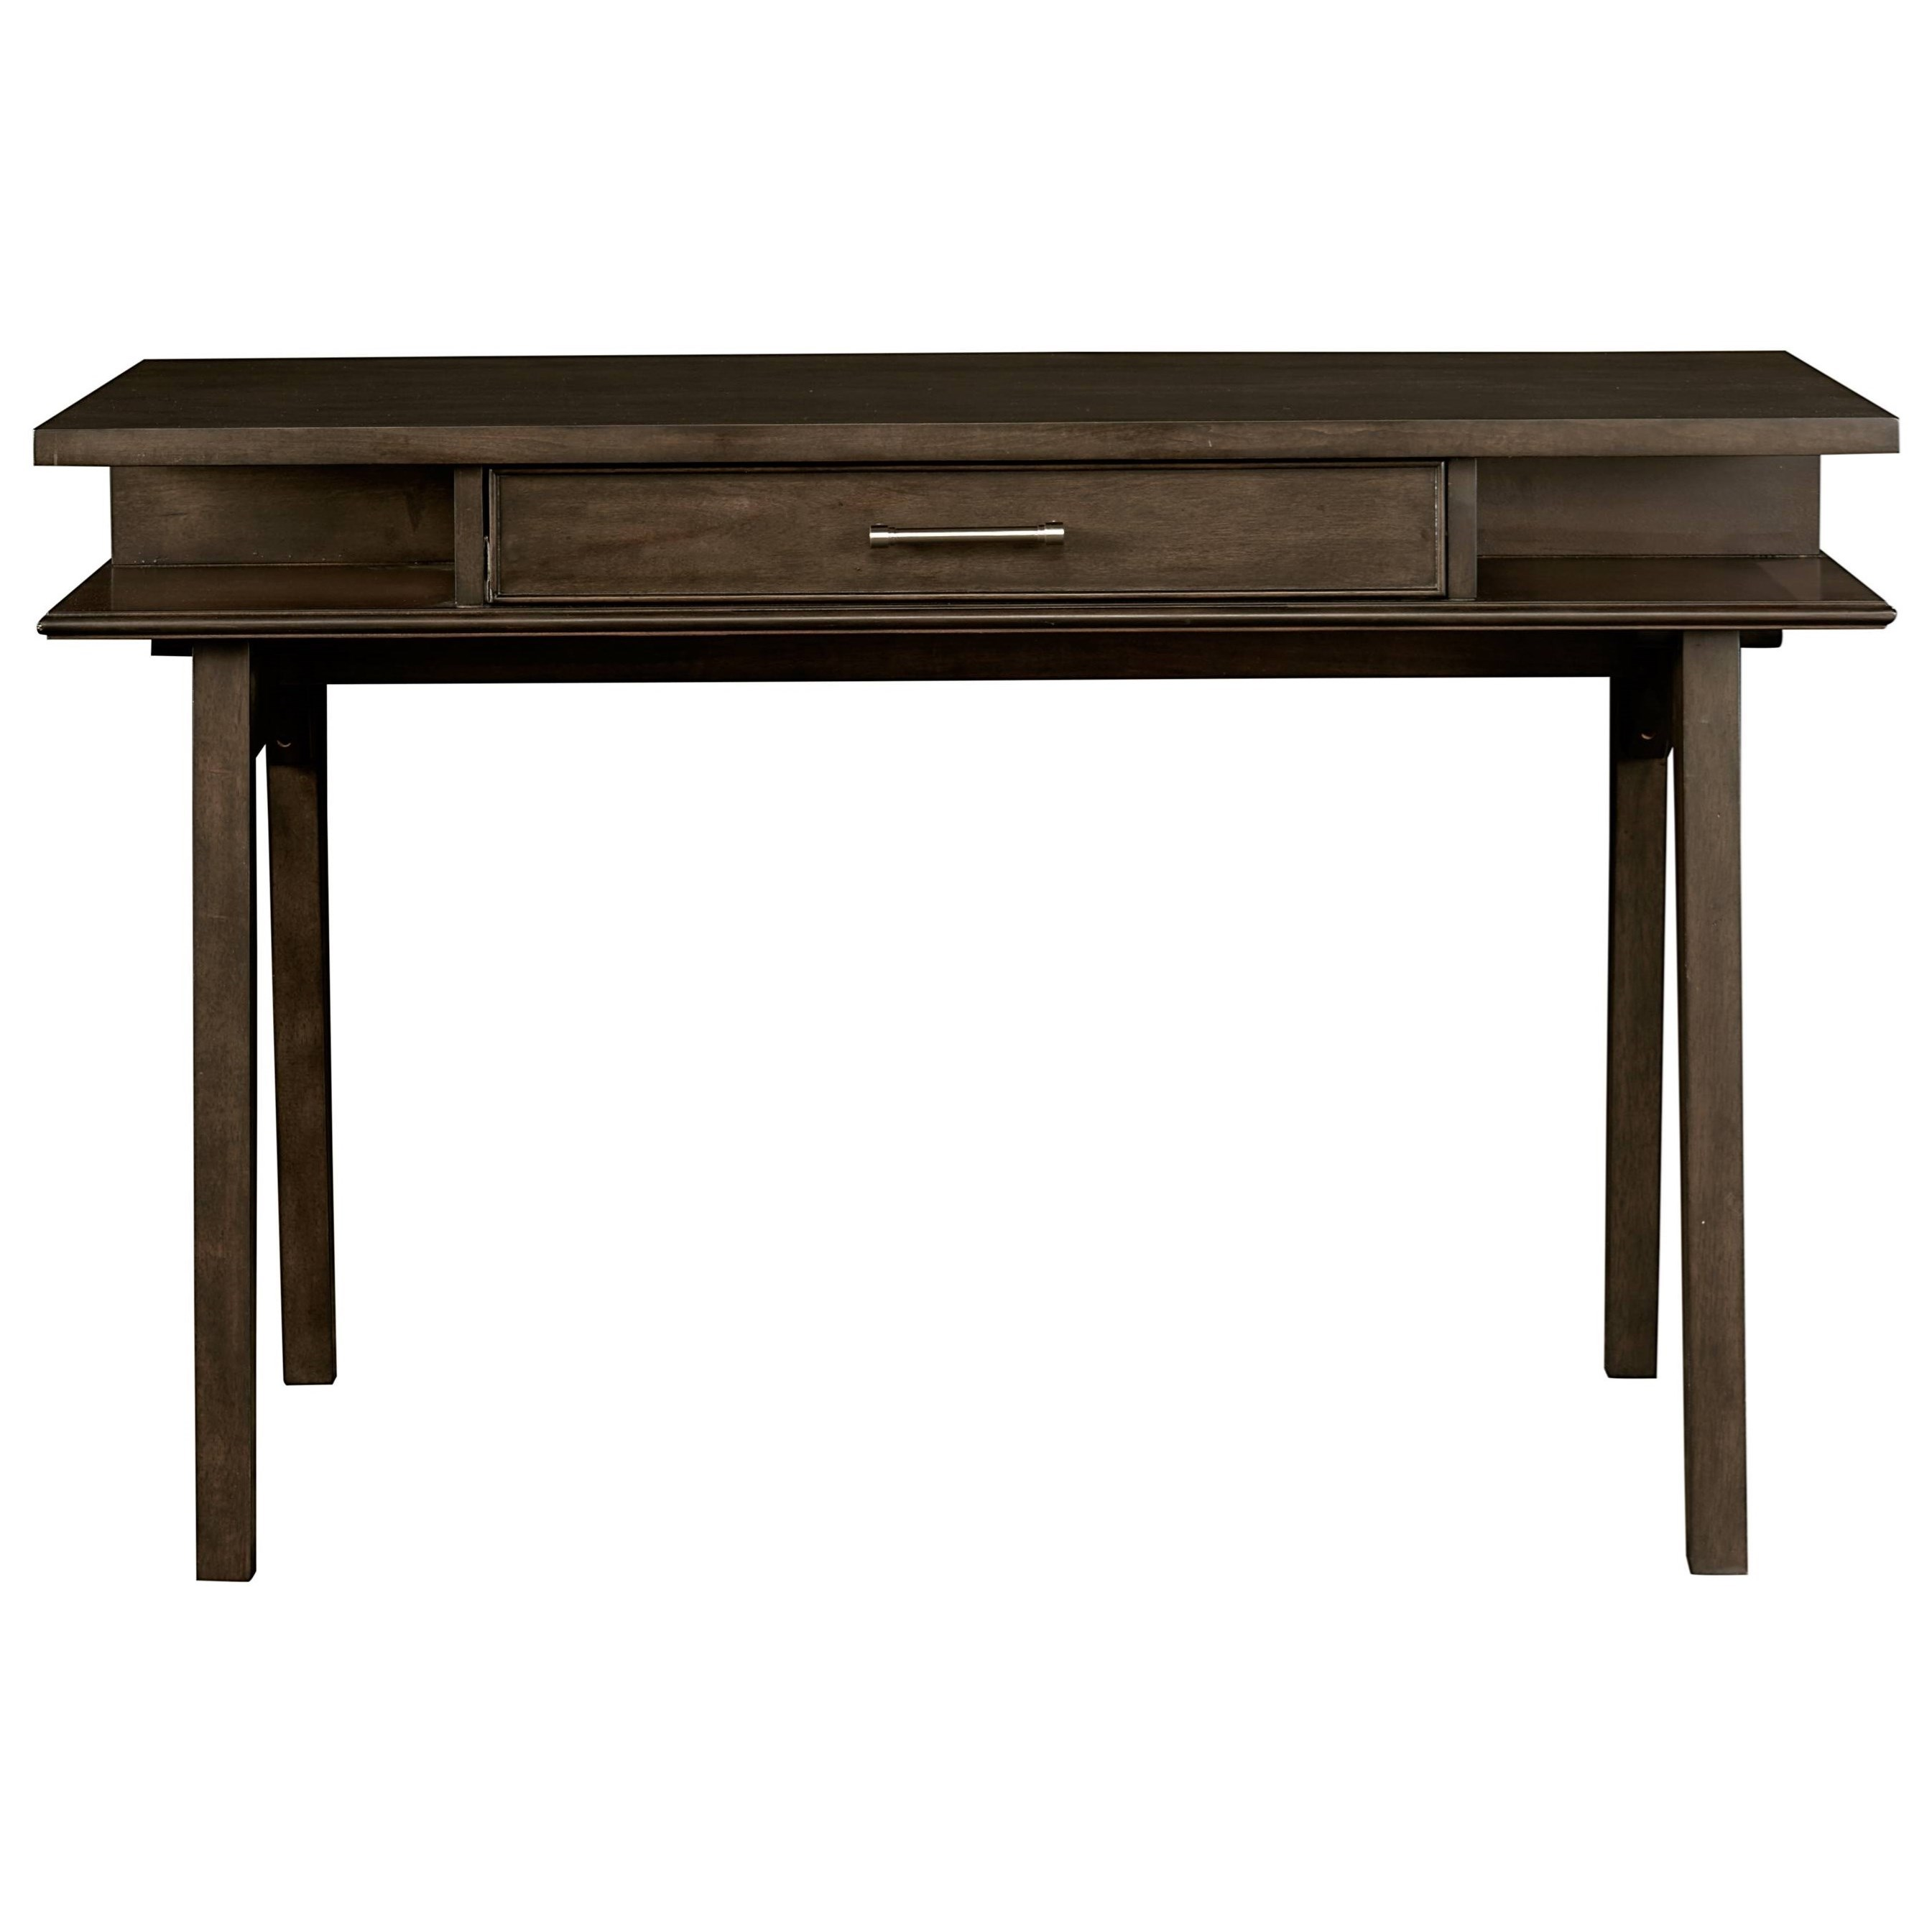 Stone & Leigh Furniture Chelsea Square Desk - Item Number: 584-13-27